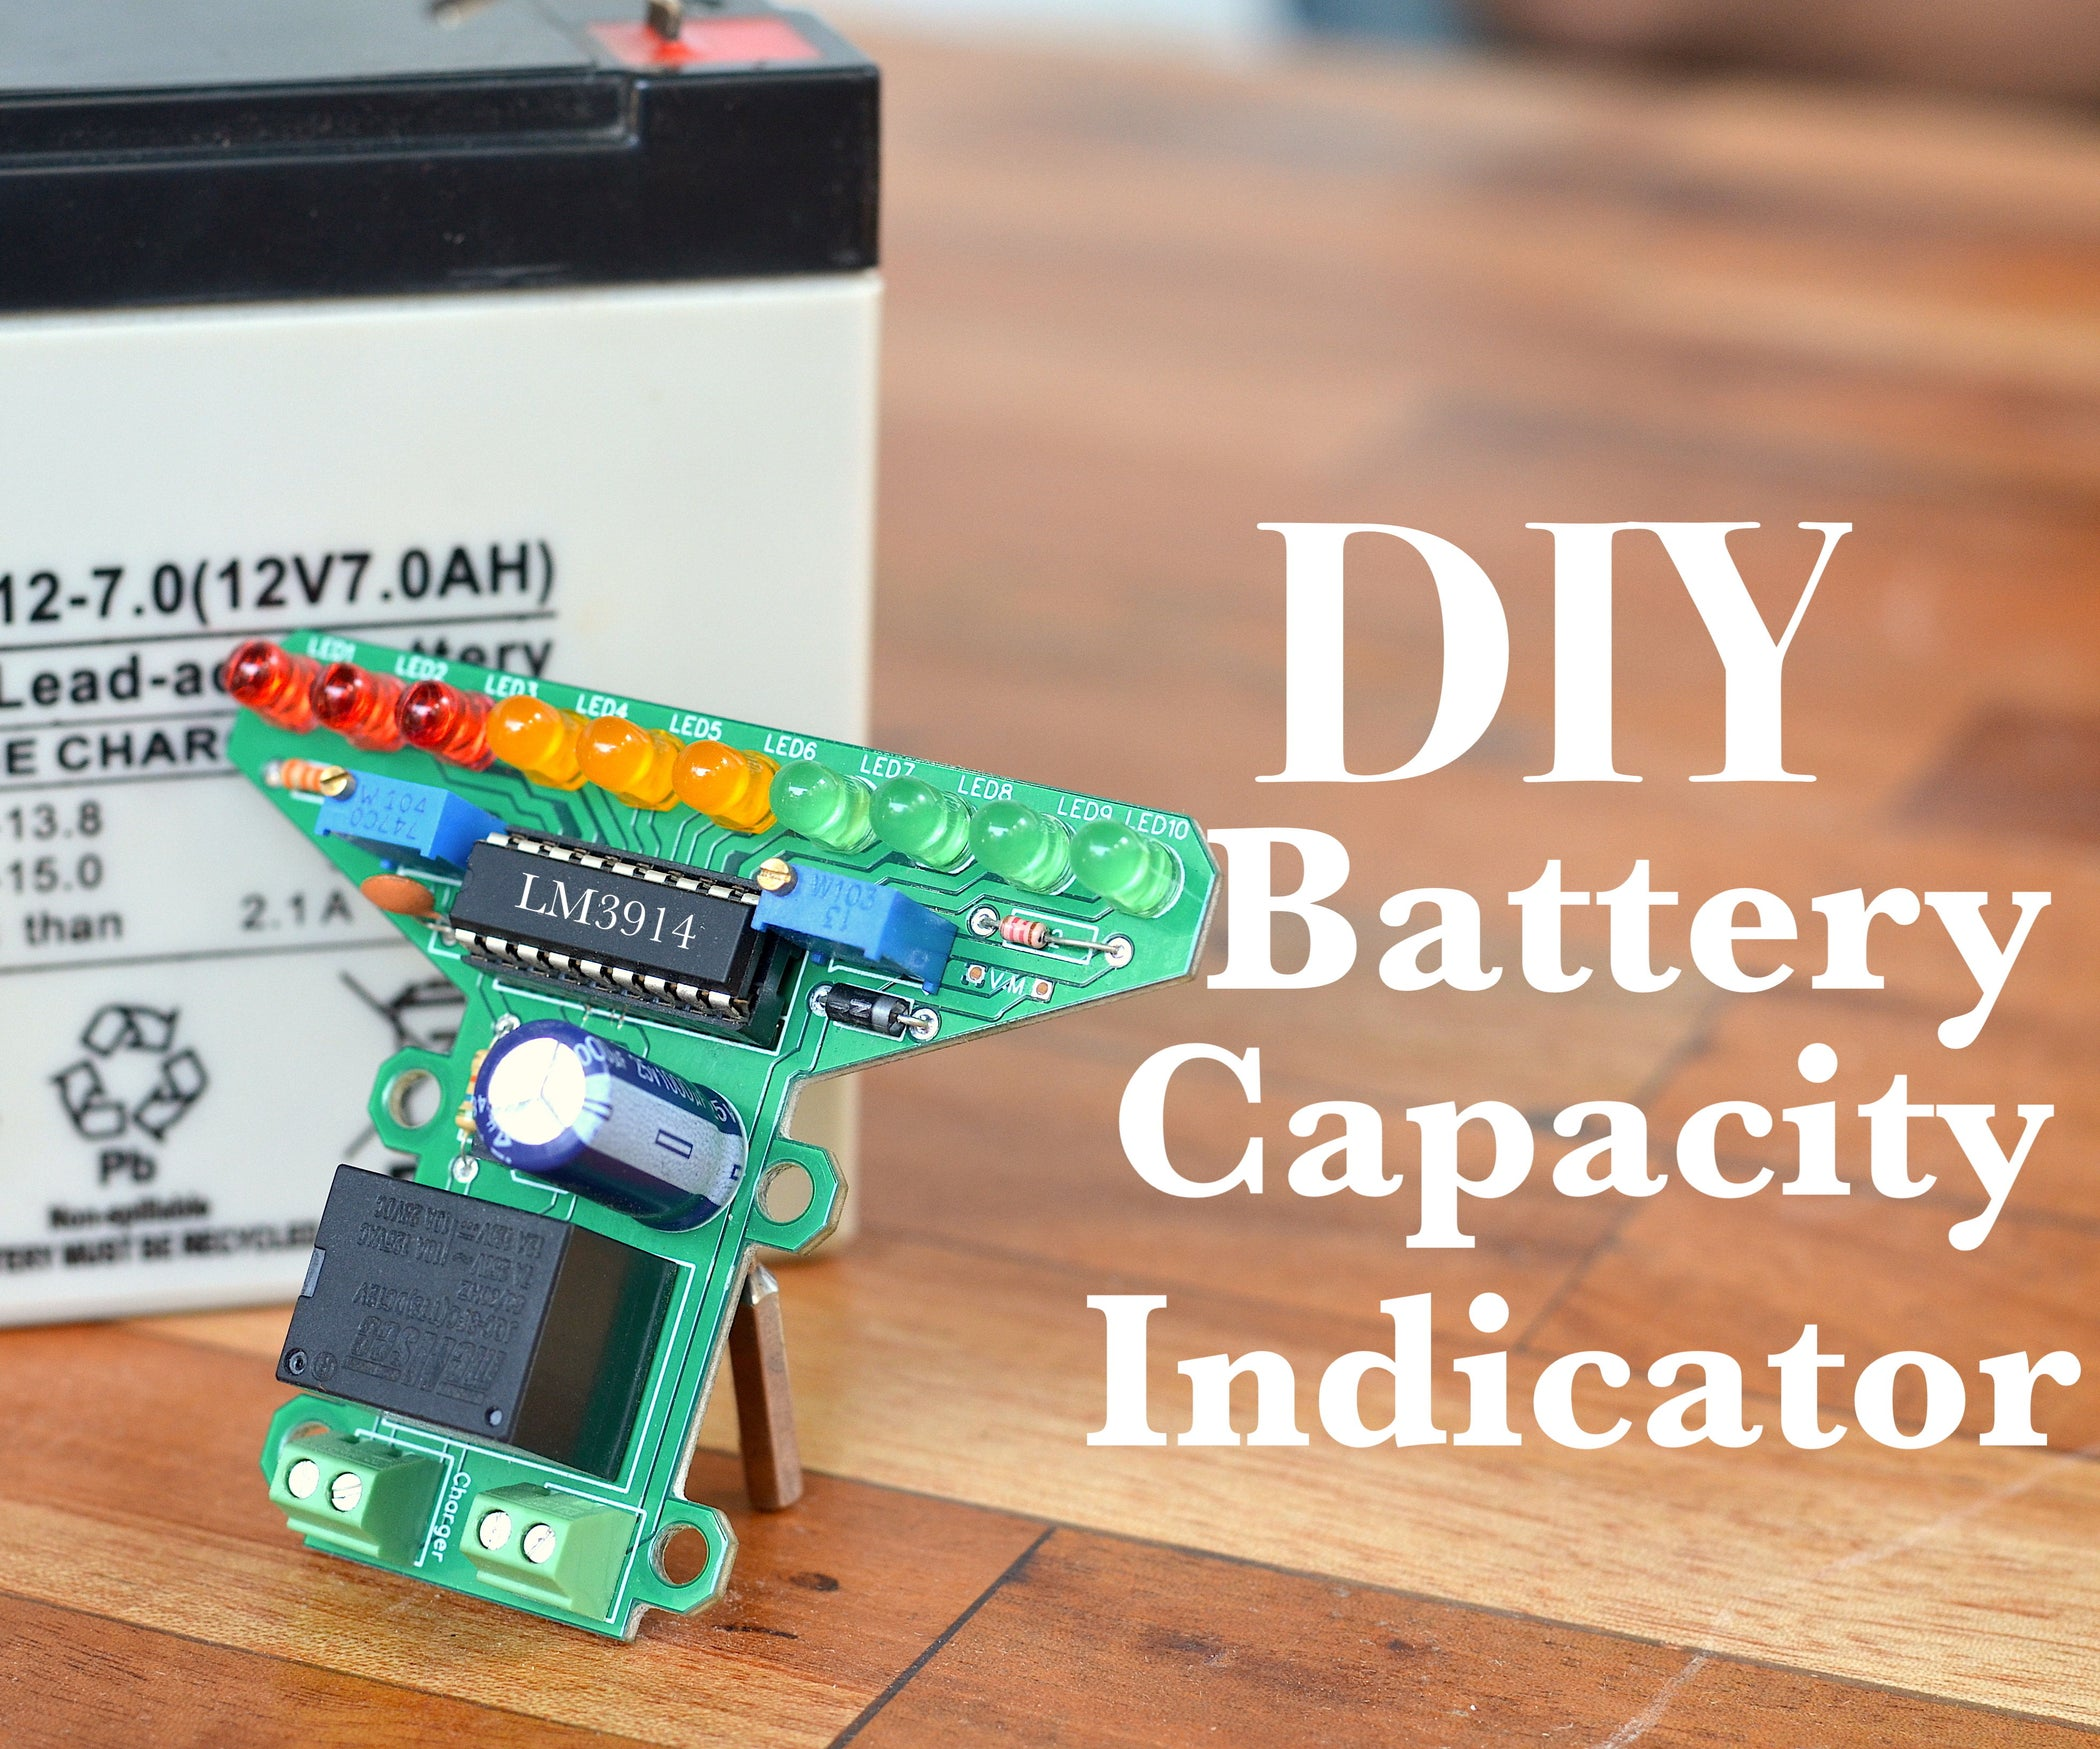 Diy Battery Level Indicator Auto Cutoff For 12v 5 Steps Lead Acid Discharge With Pictures